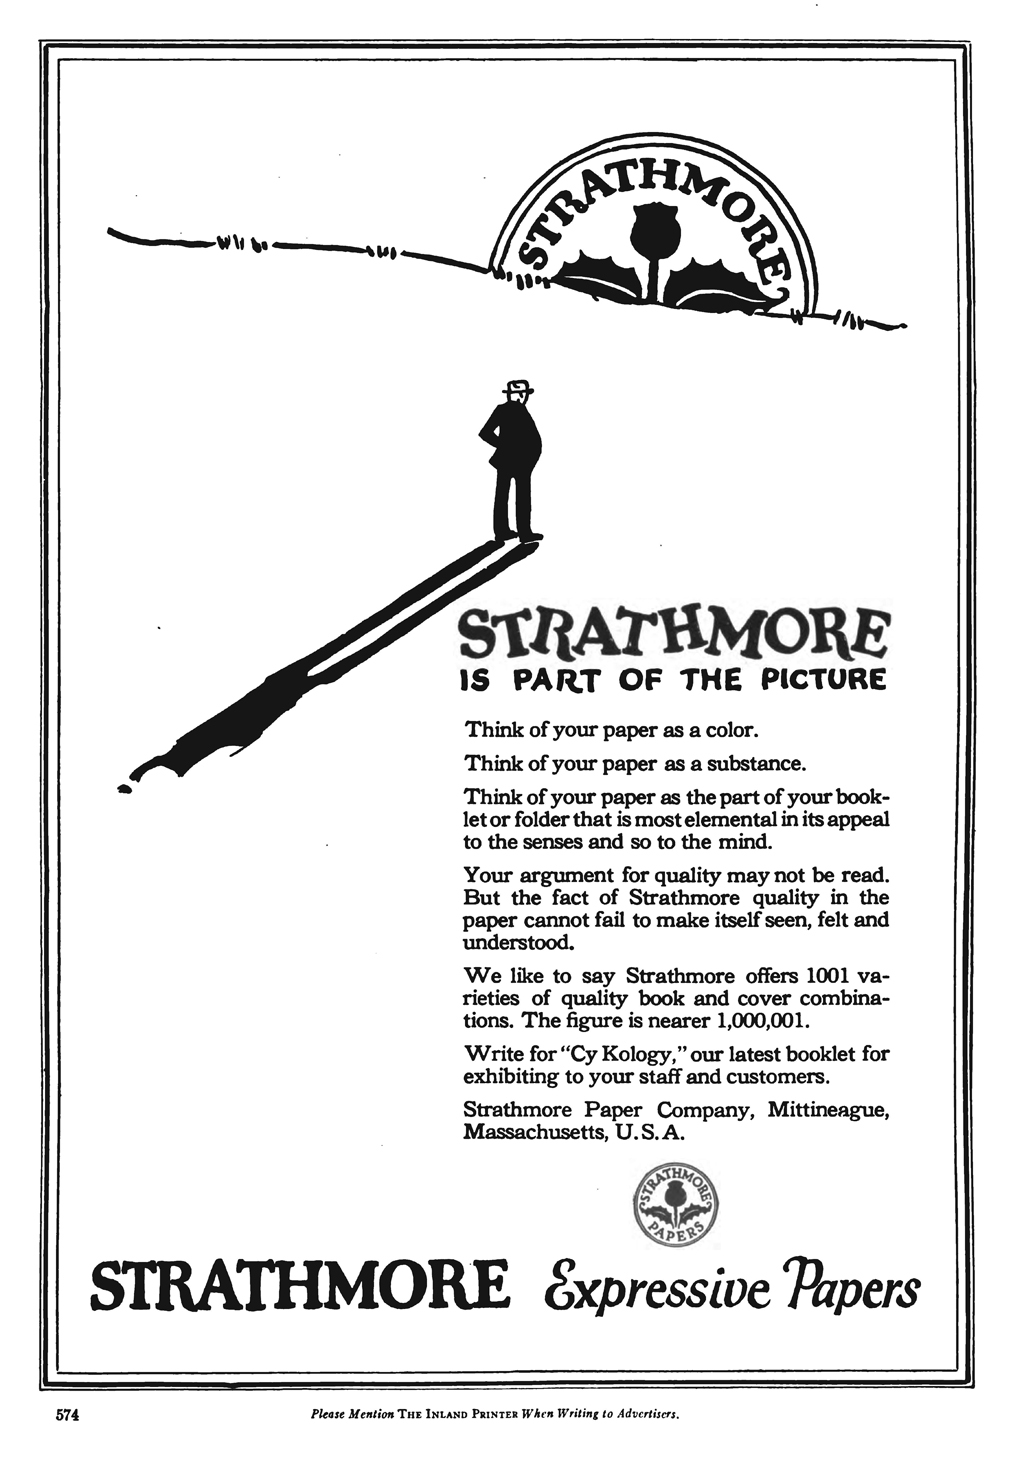 """Strathmore Is Part of the Picture"" advertisement in The Inland Printer vol. 68, no. 4 (January 1922)."